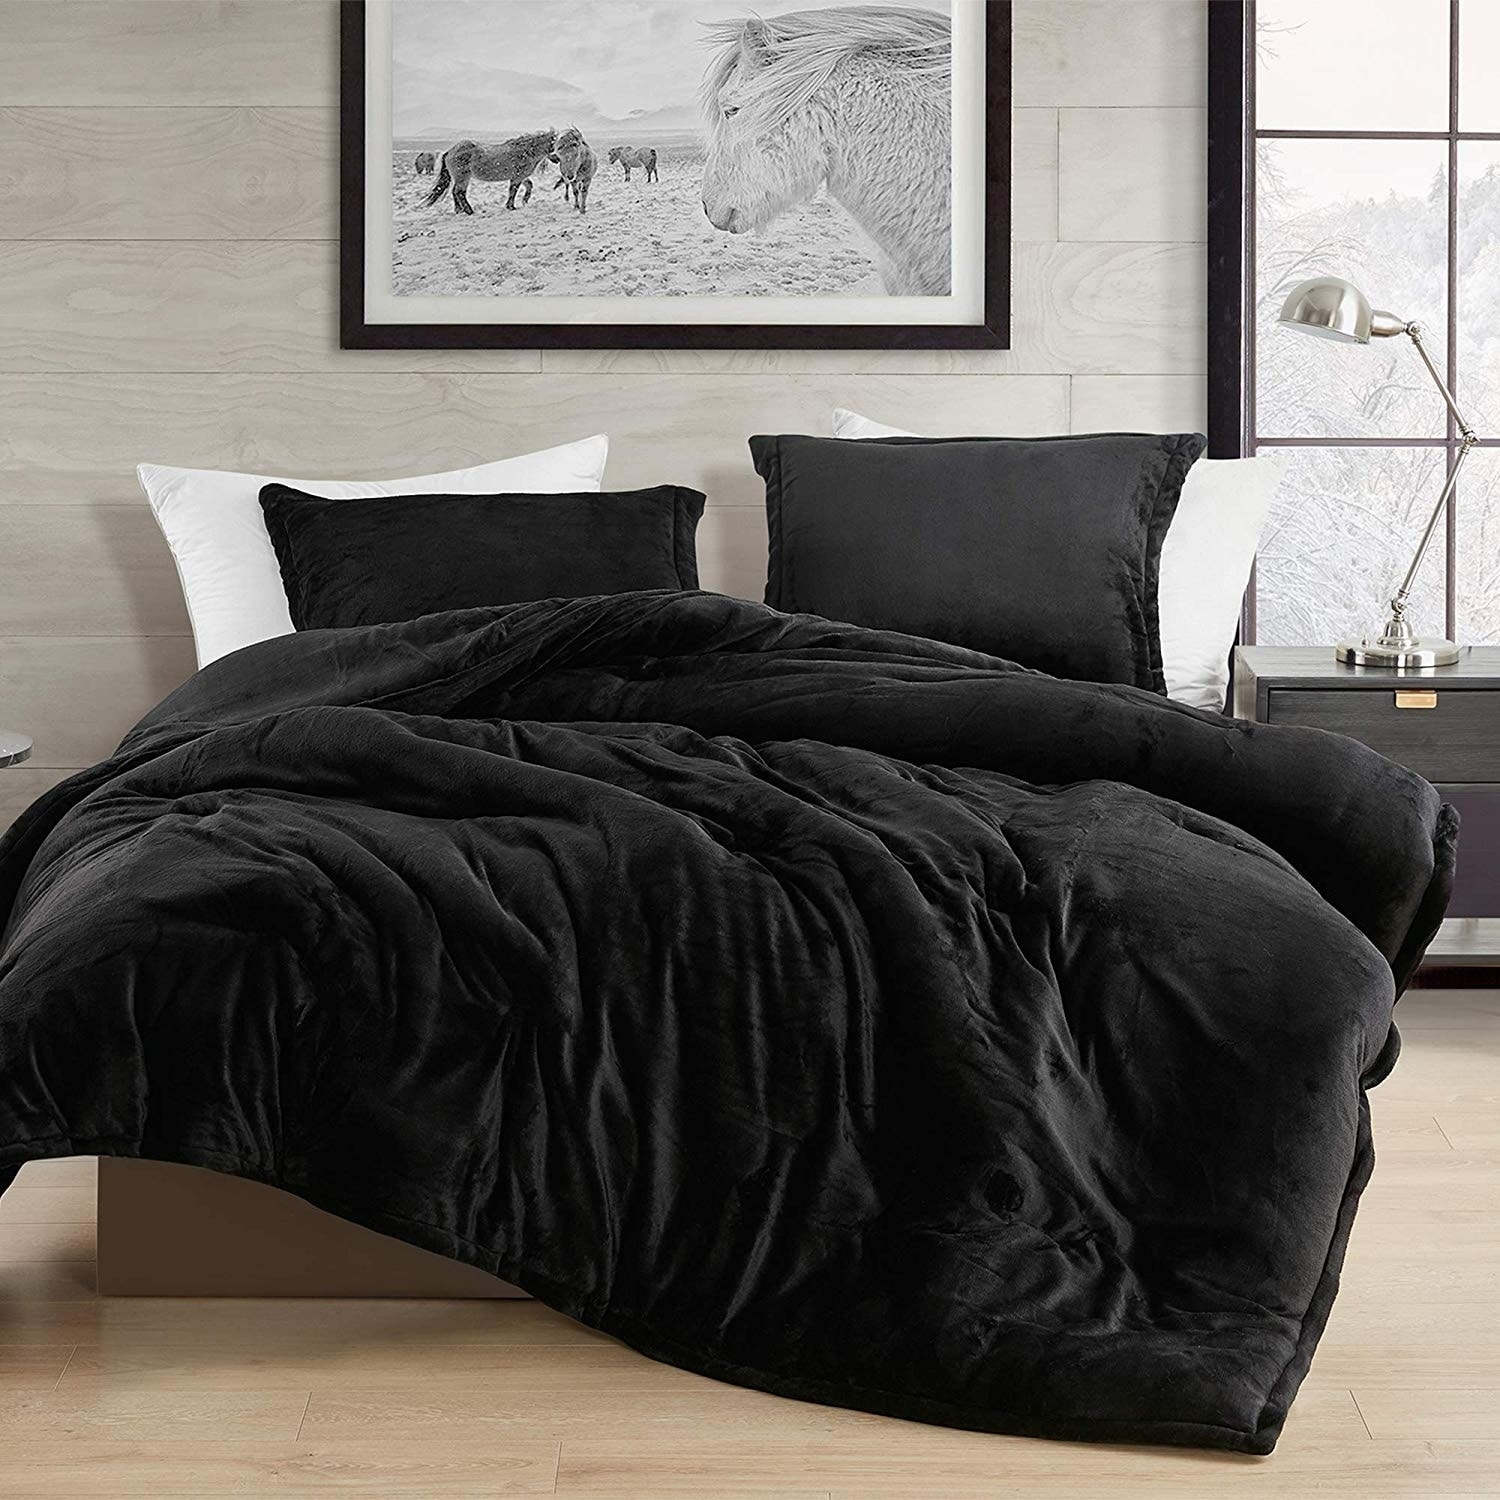 Black Touchy Feely Coma Inducer Oversized Comforter On Sale Overstock 28858917